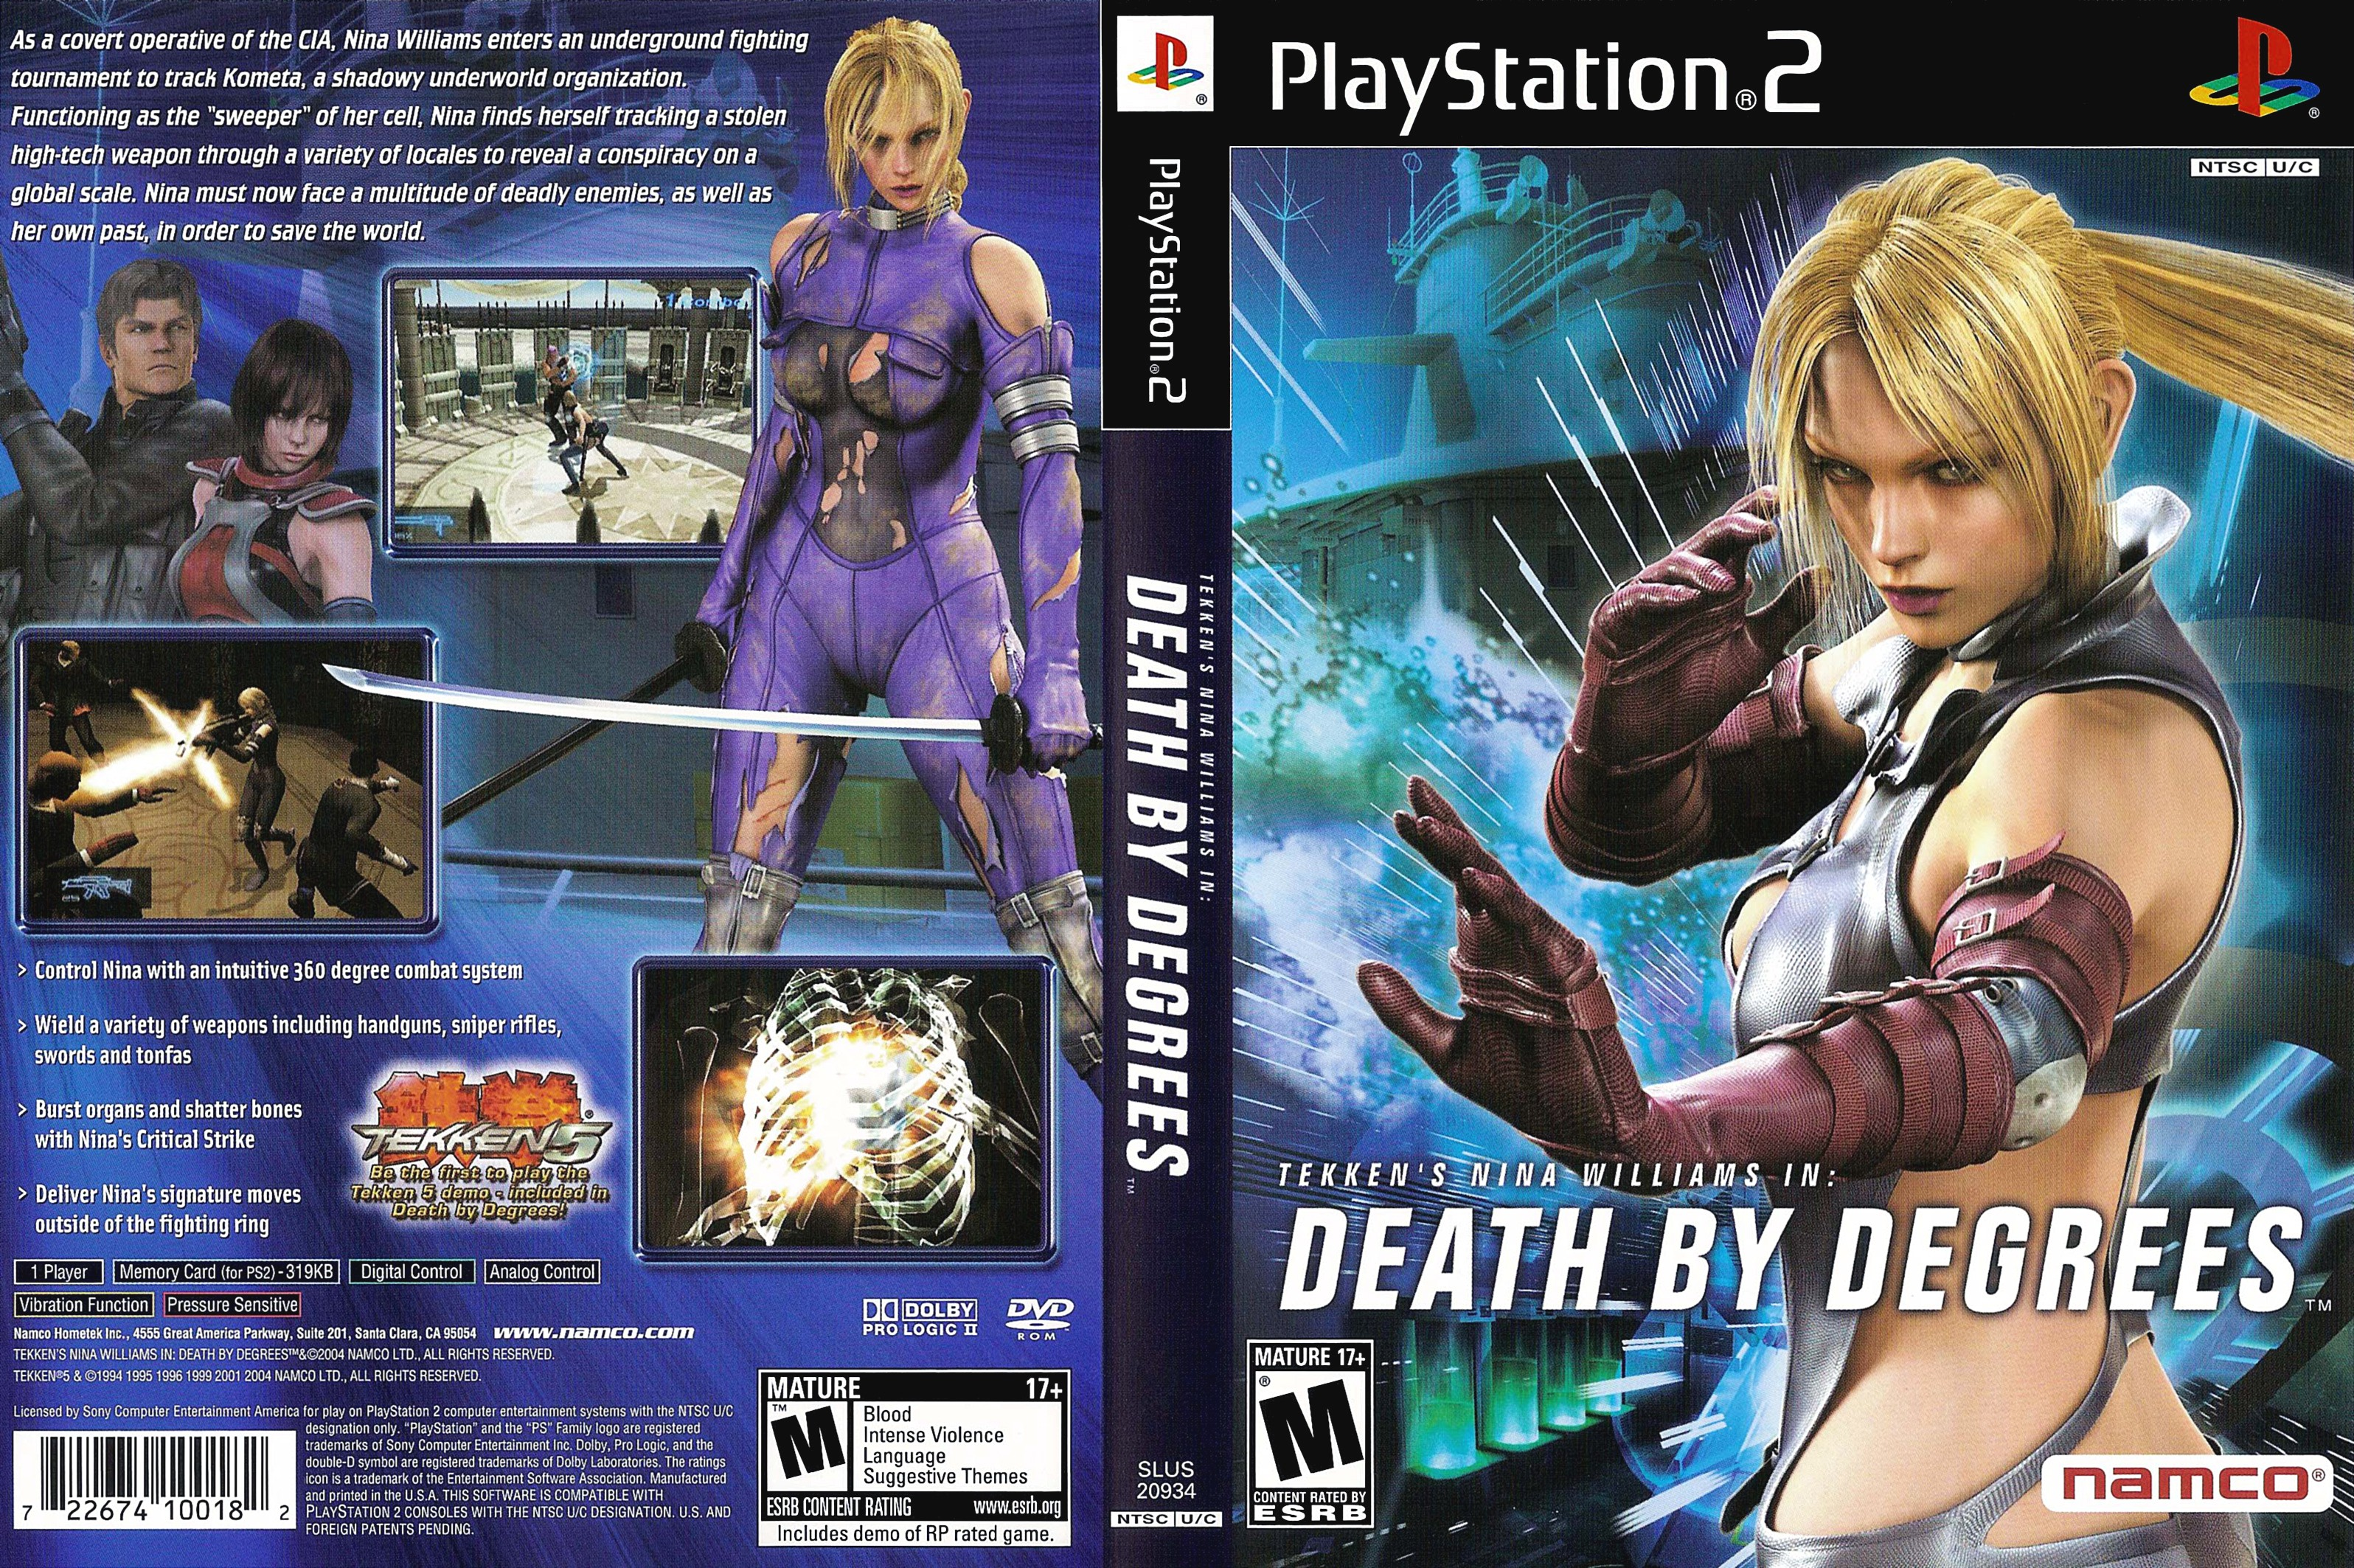 Tekken S Nina Williams In Death By Degrees Ntsc U Front